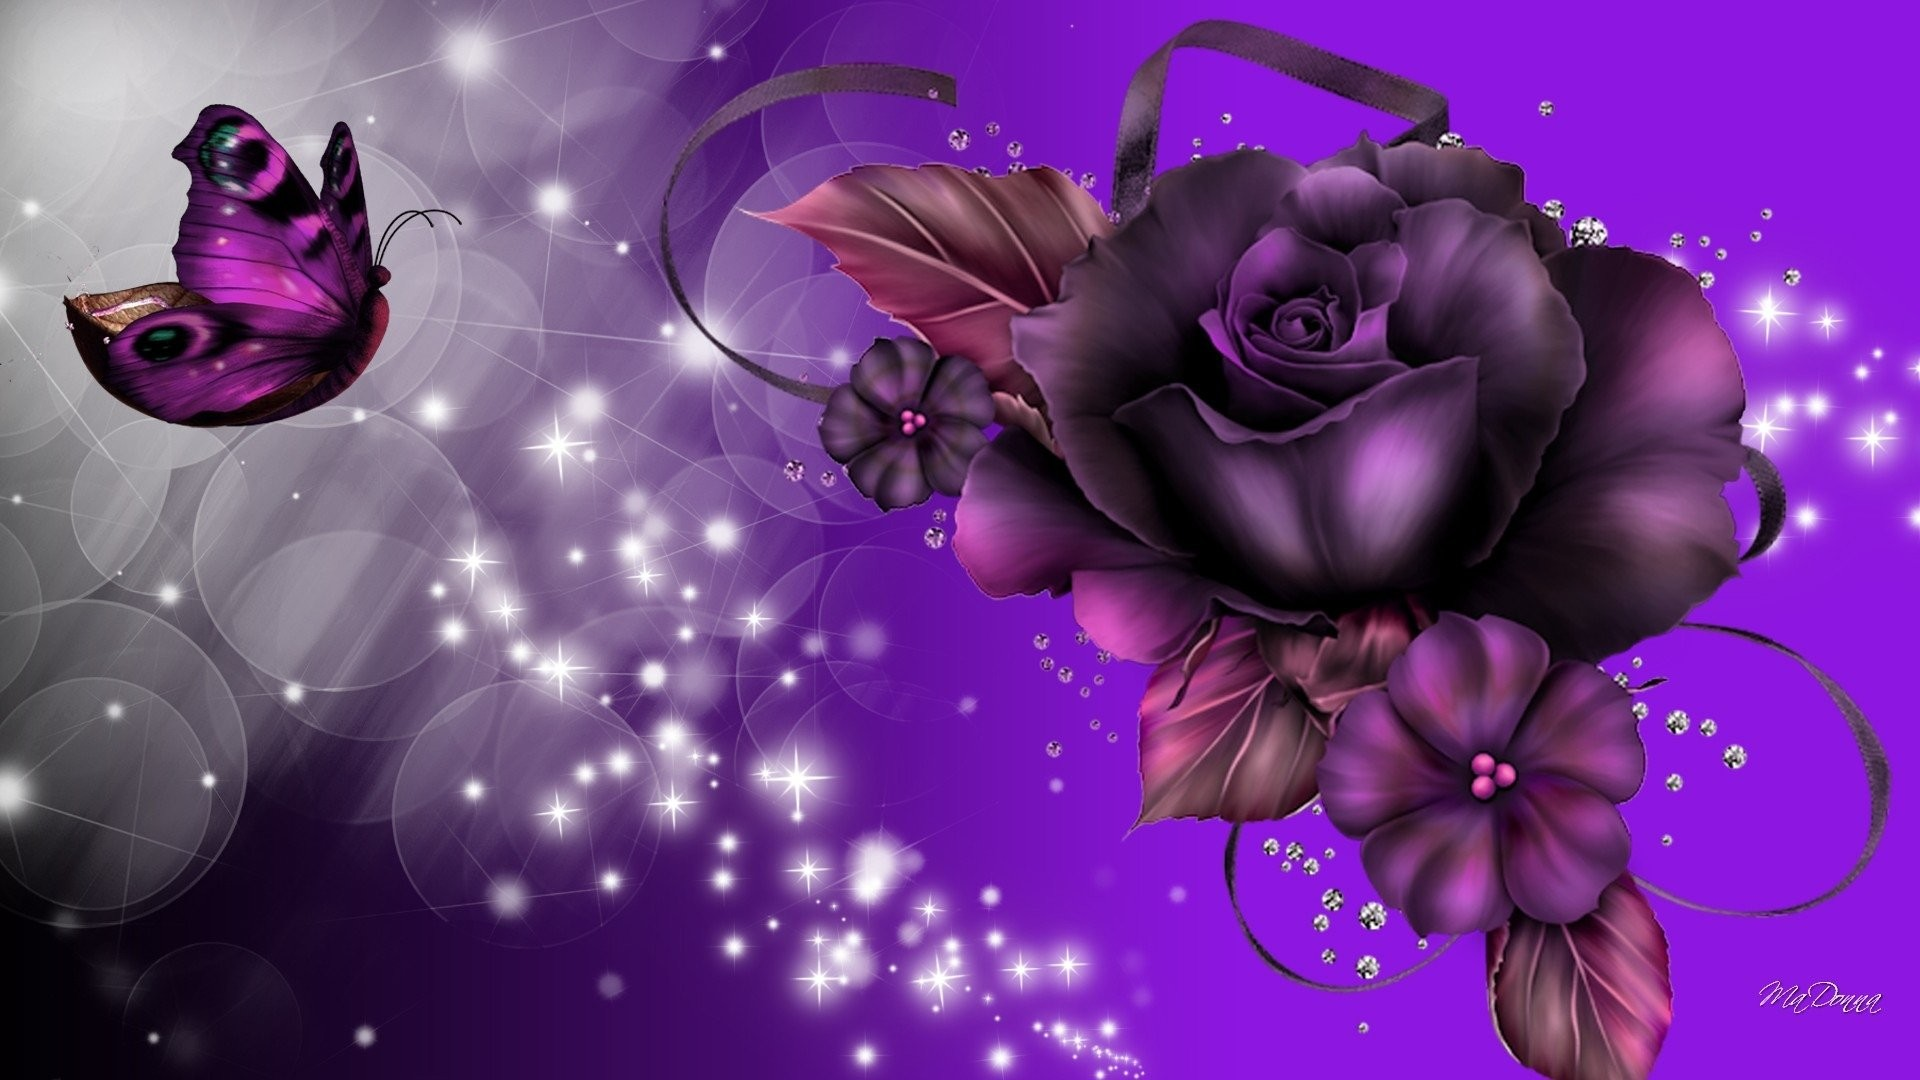 1920x1080 Fantasy - Artistic Sparkles Butterfly Purple Rose Wallpaper